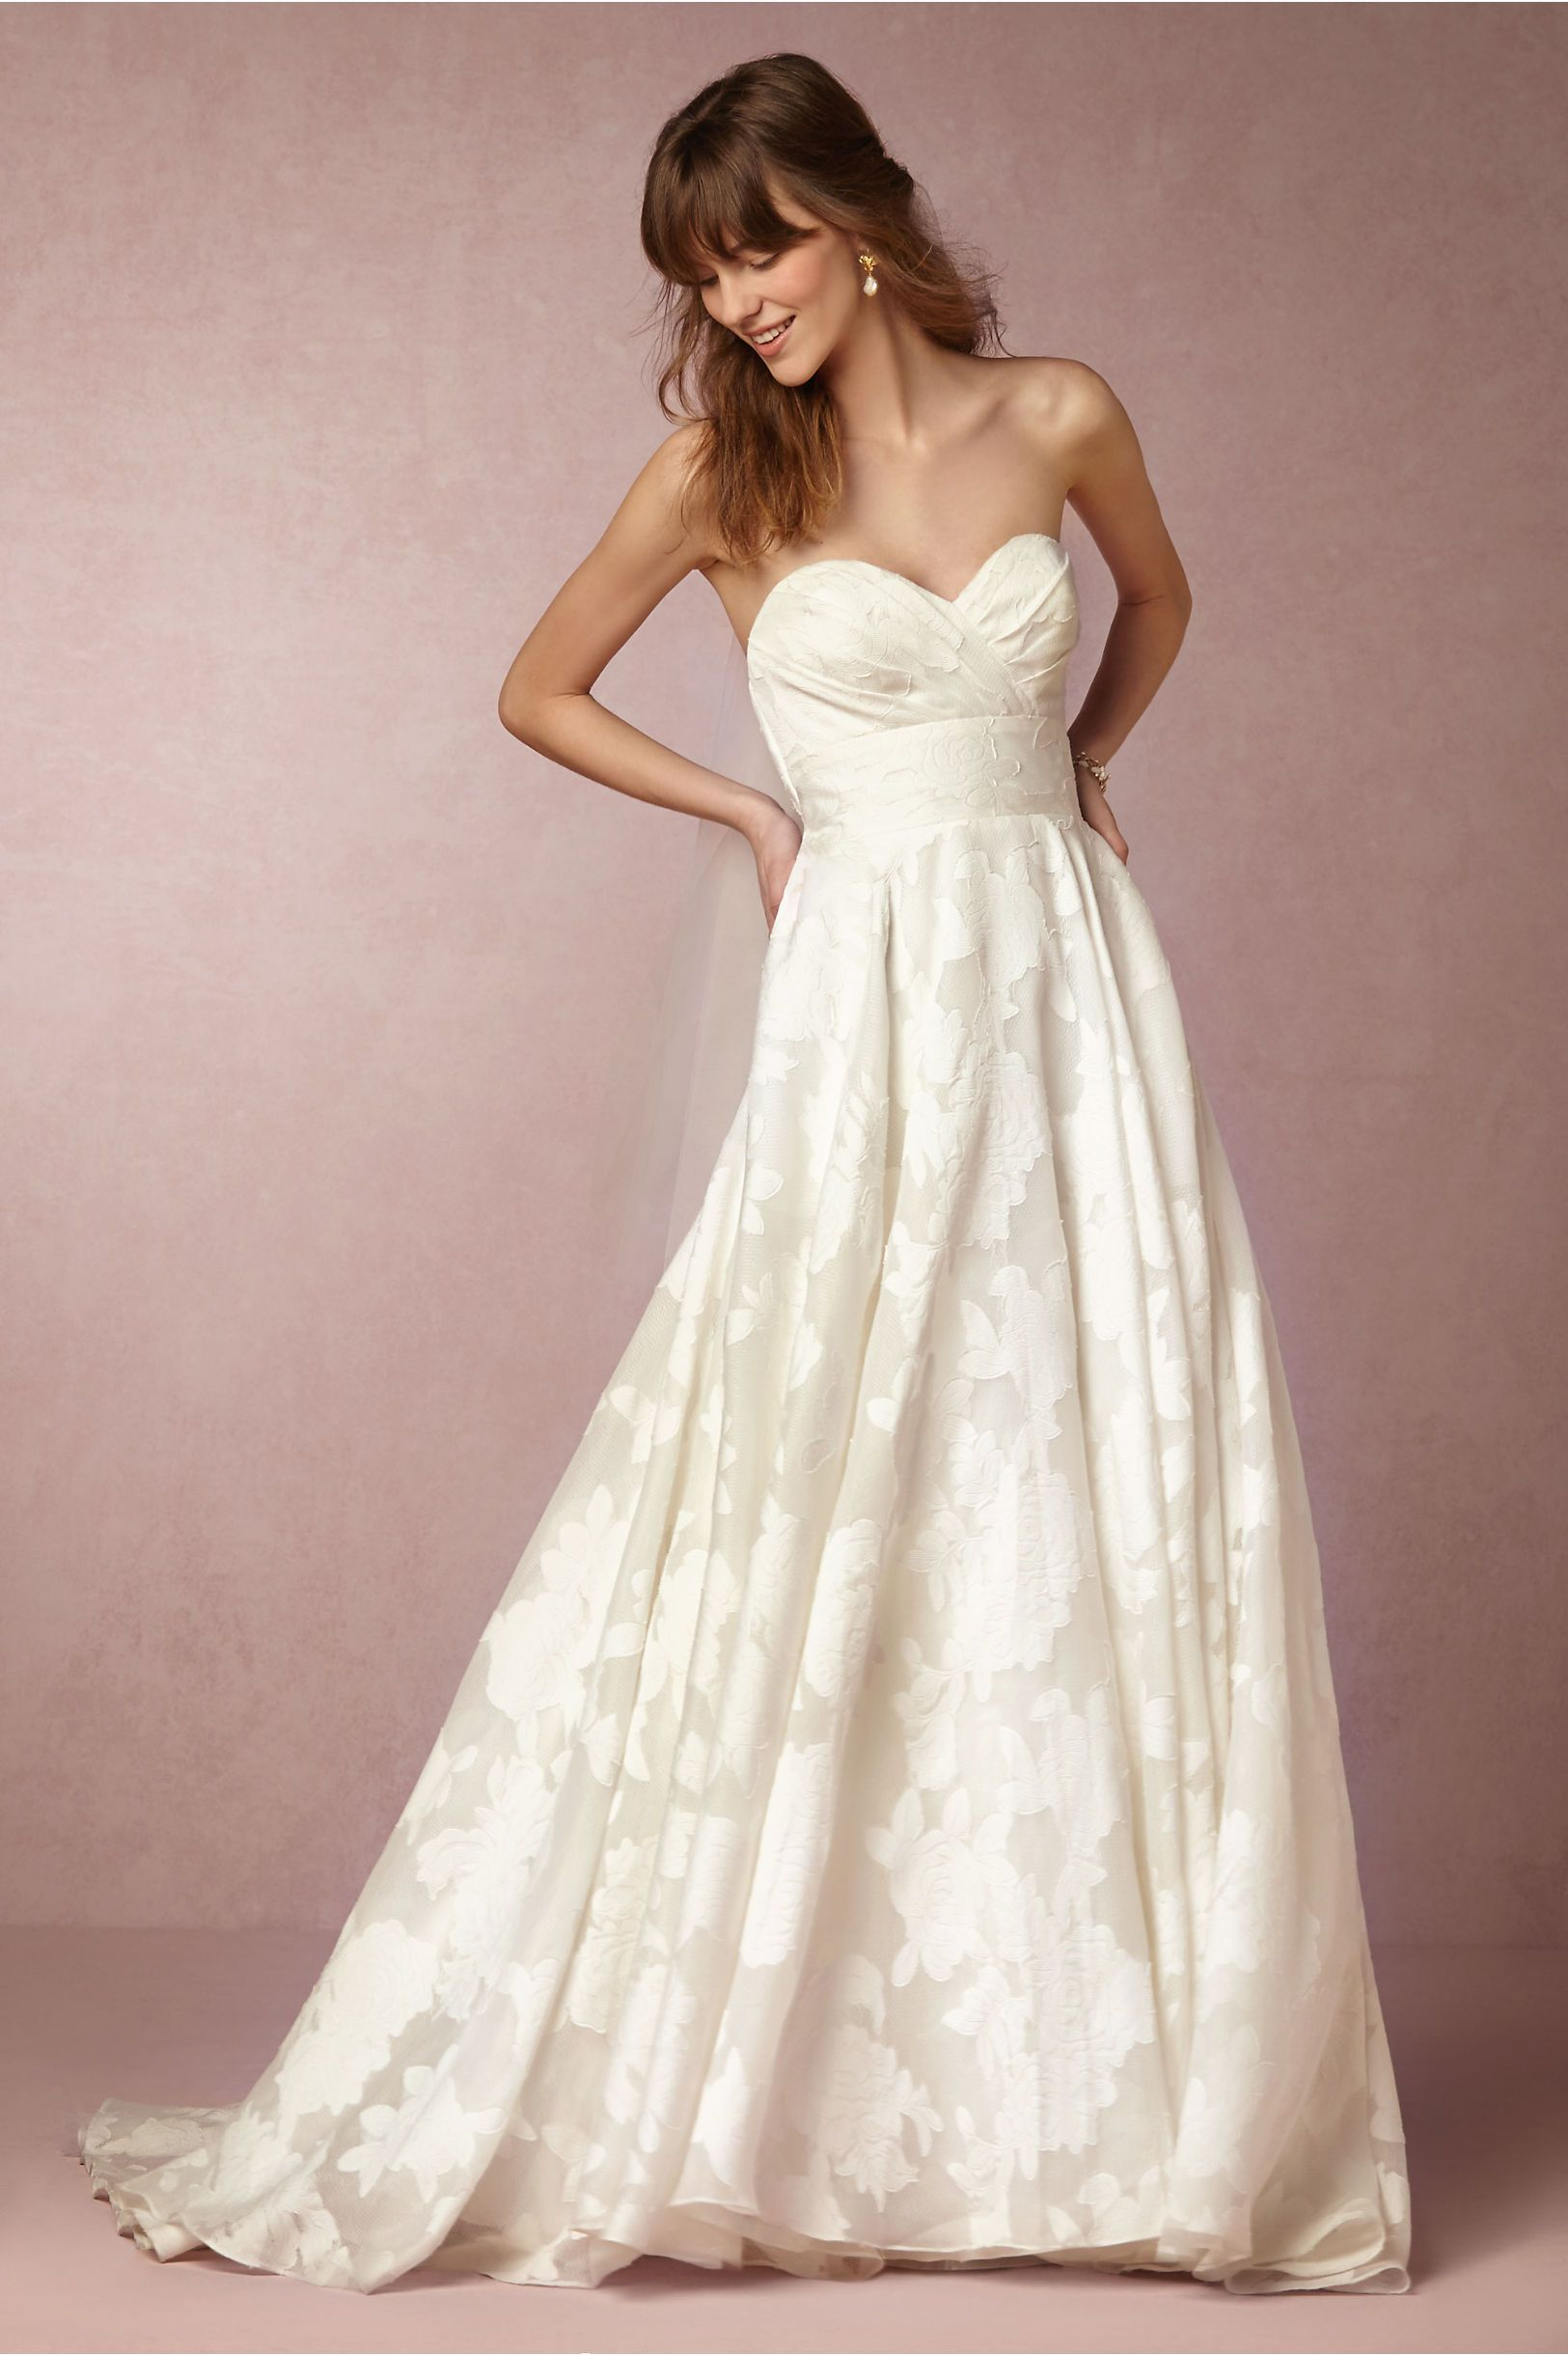 Pink lace wedding dress  BHLDN Judith Gown in Bride Wedding Dresses at BHLDN  Gorgeous Gowns